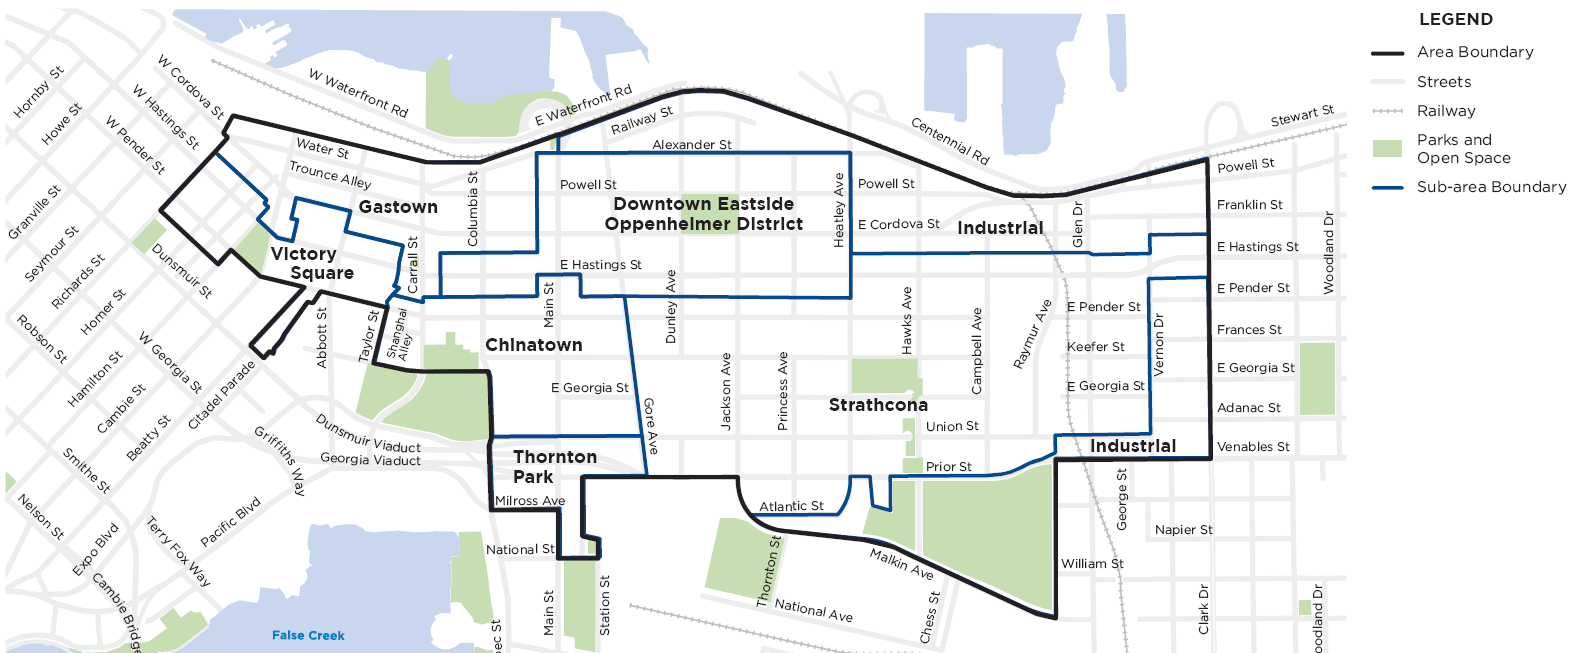 Downtown Eastside Local Area Plan DRAFT Version February 26, 2014 Page 1 1.